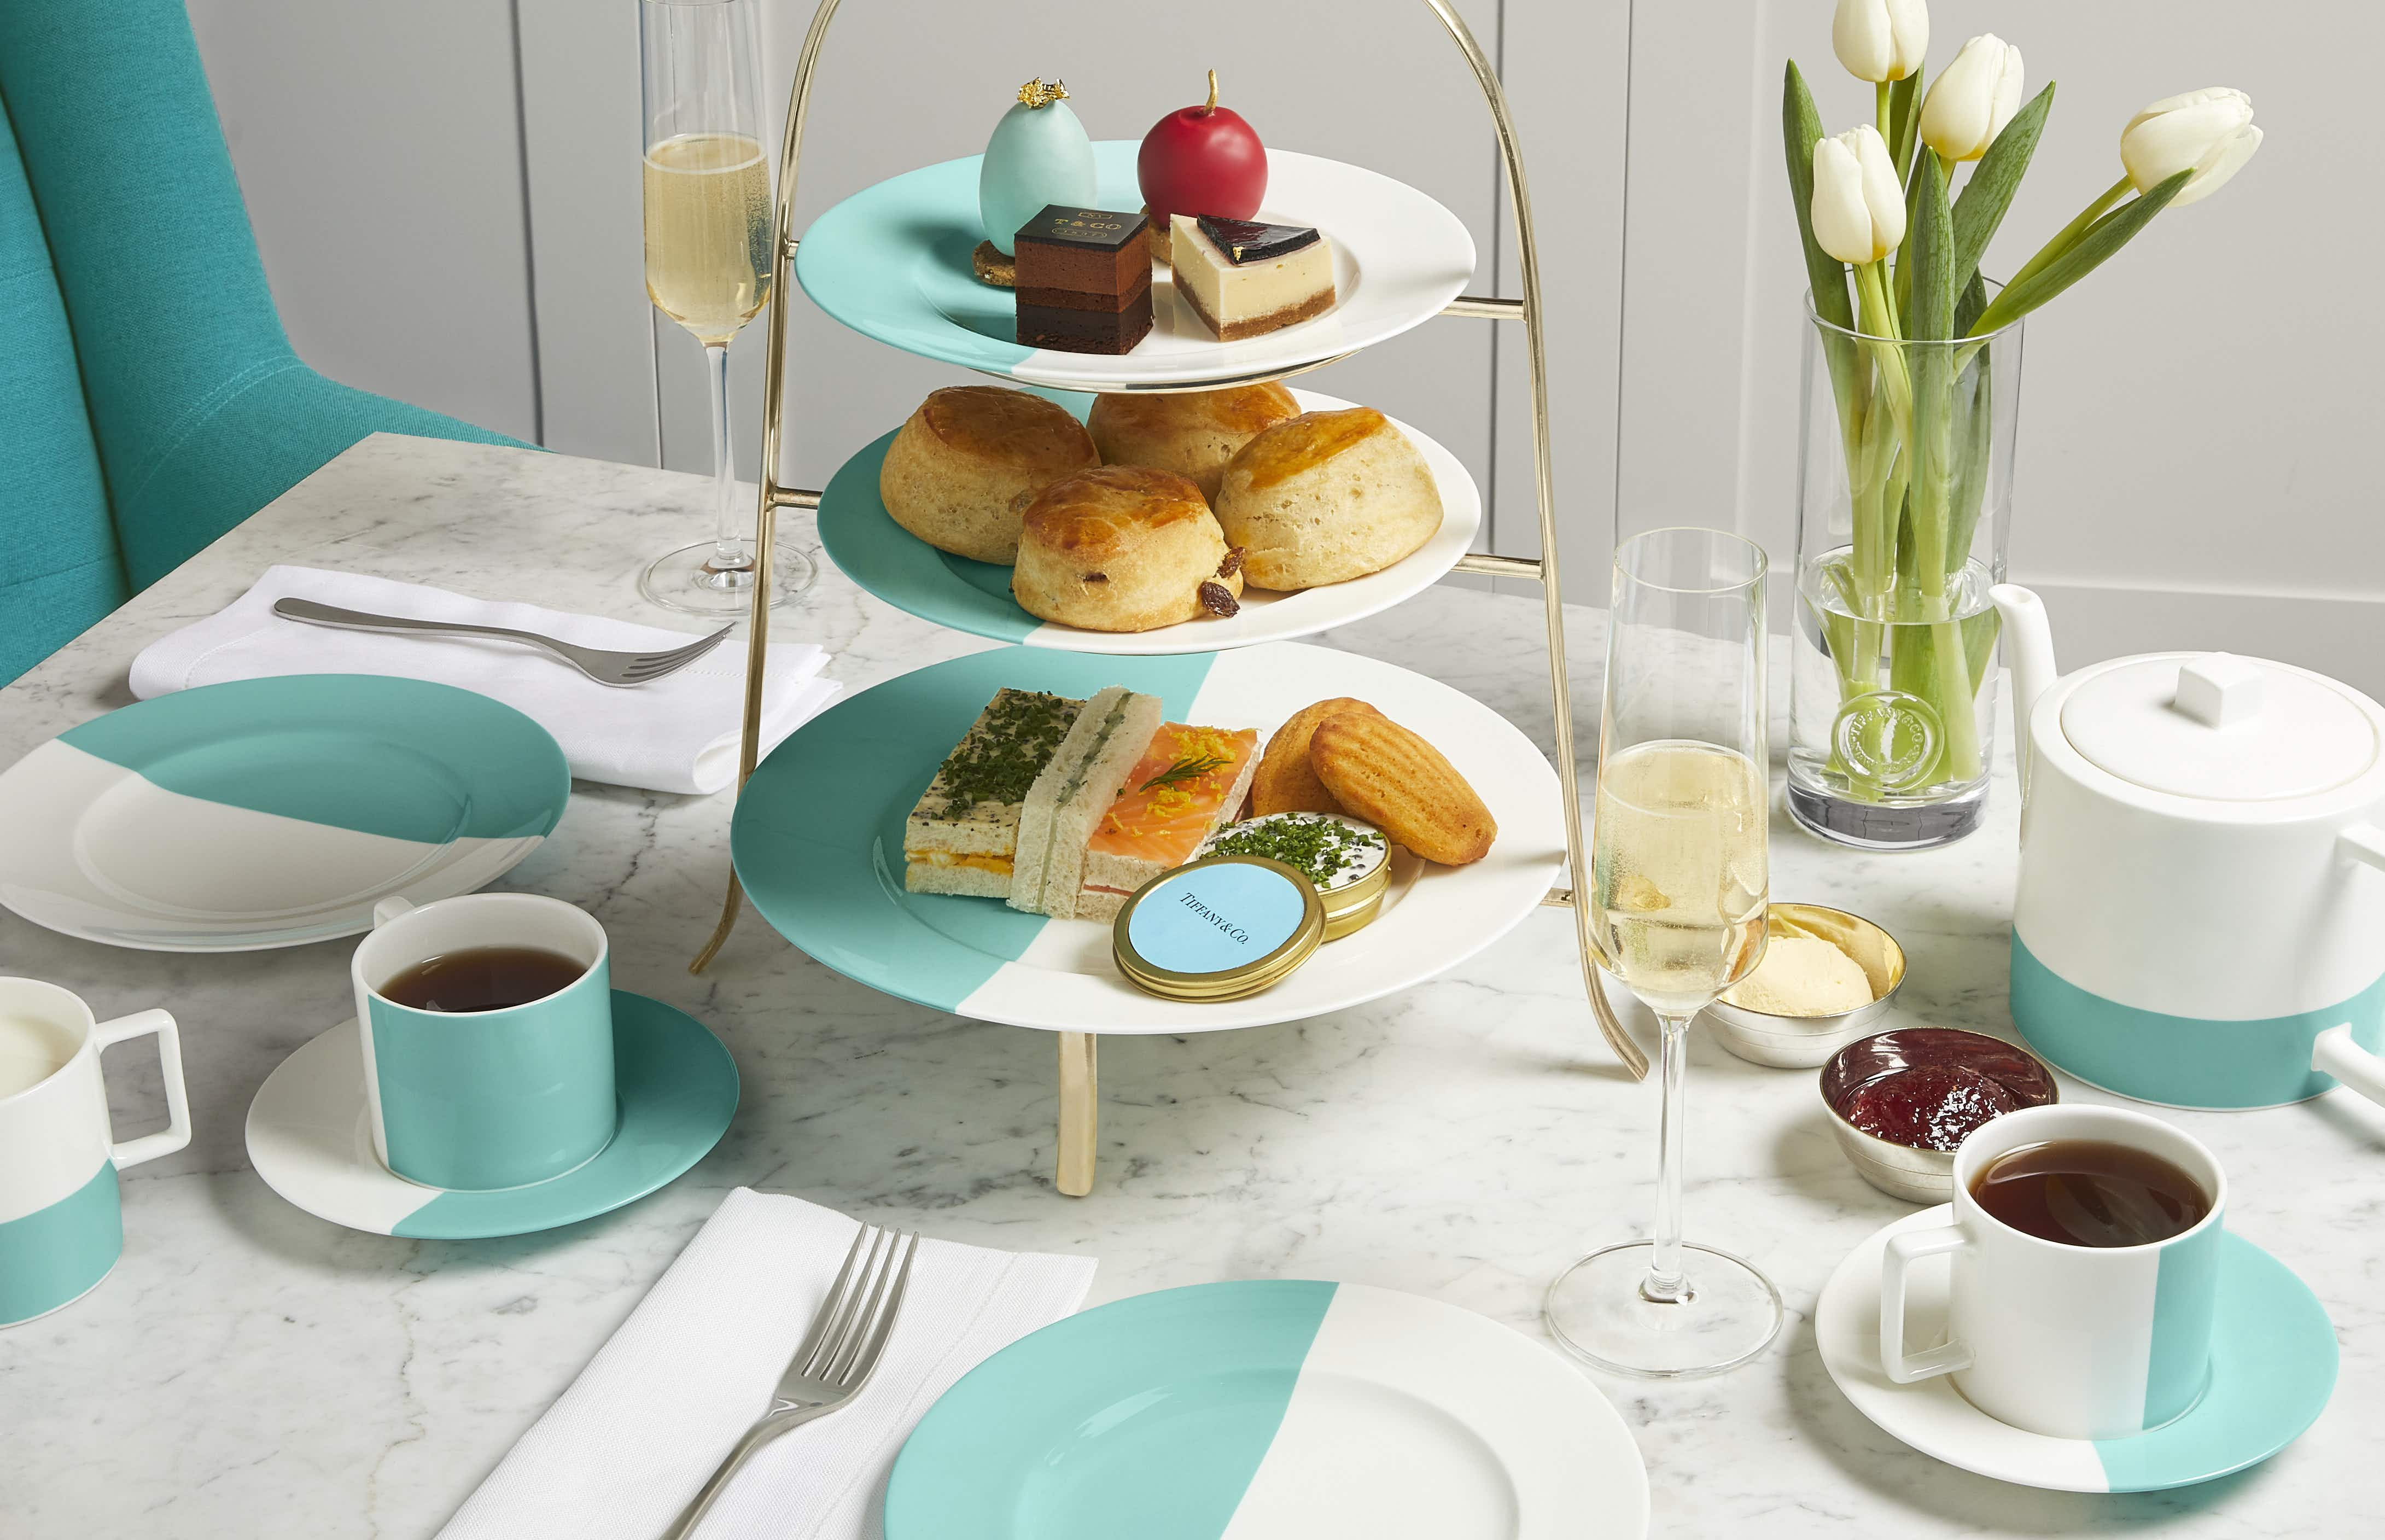 You'll soon be able to have a real breakfast at Tiffany's in London